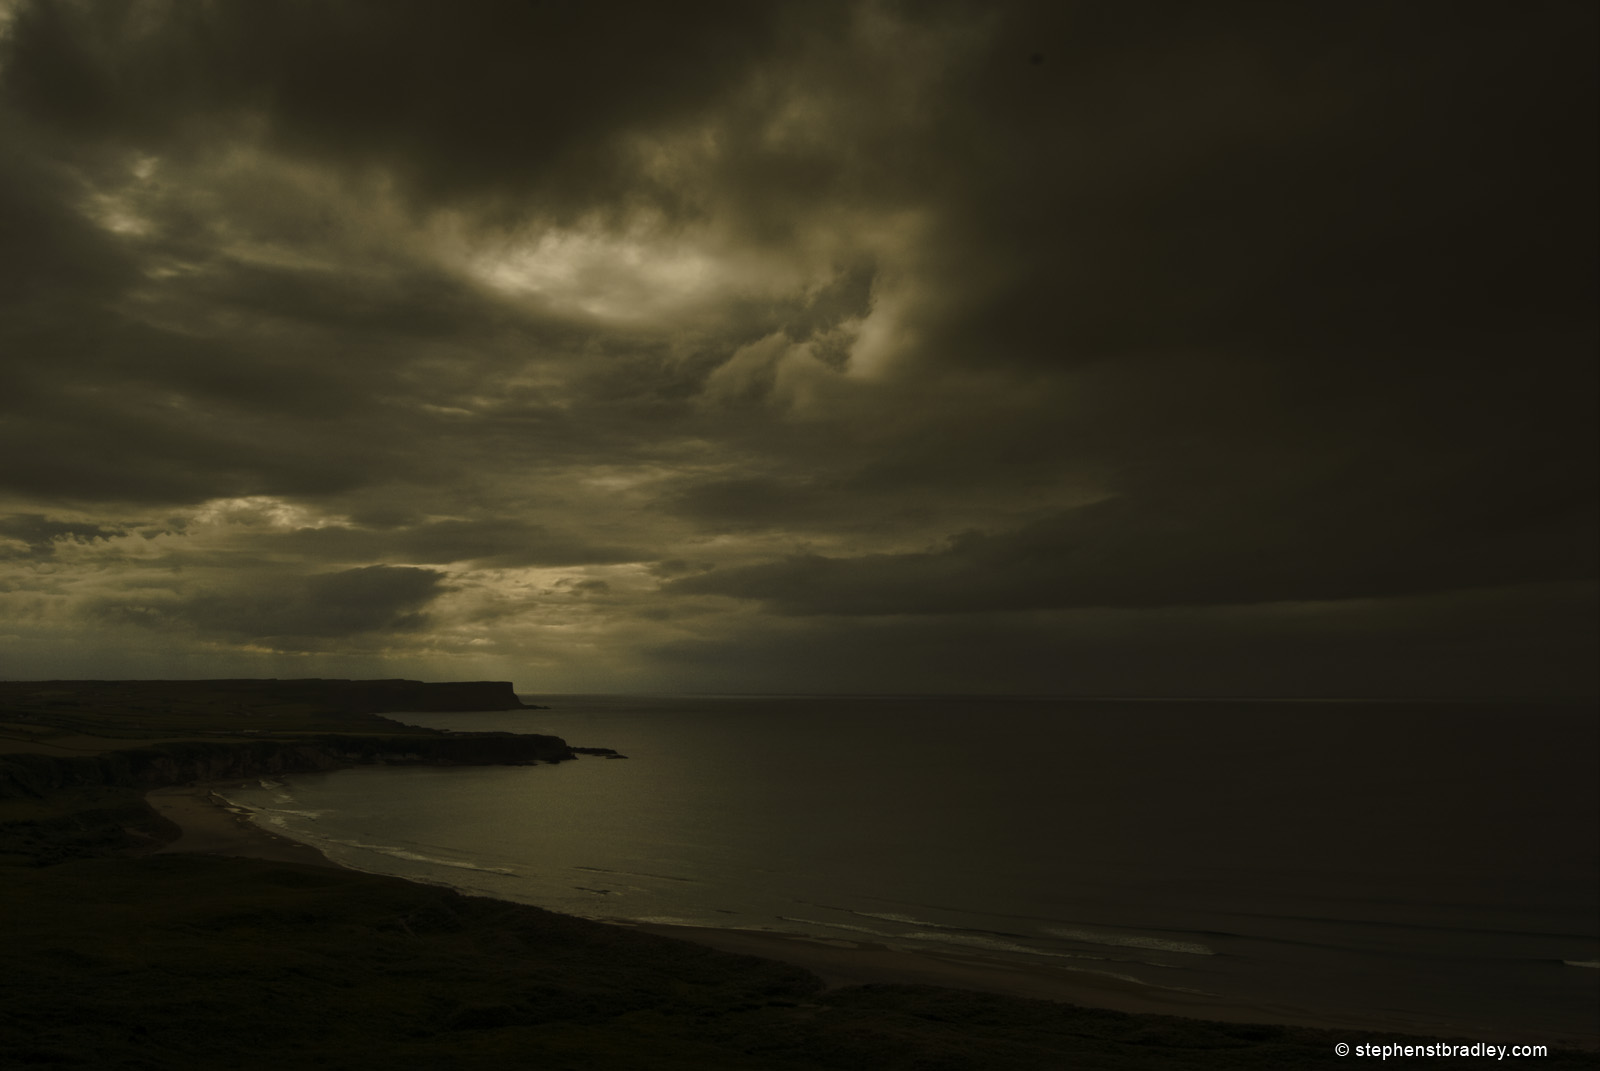 Landscape photograph of White Park Bay, Northern Ireland by Stephen Bradley photographer - photograph 2140.